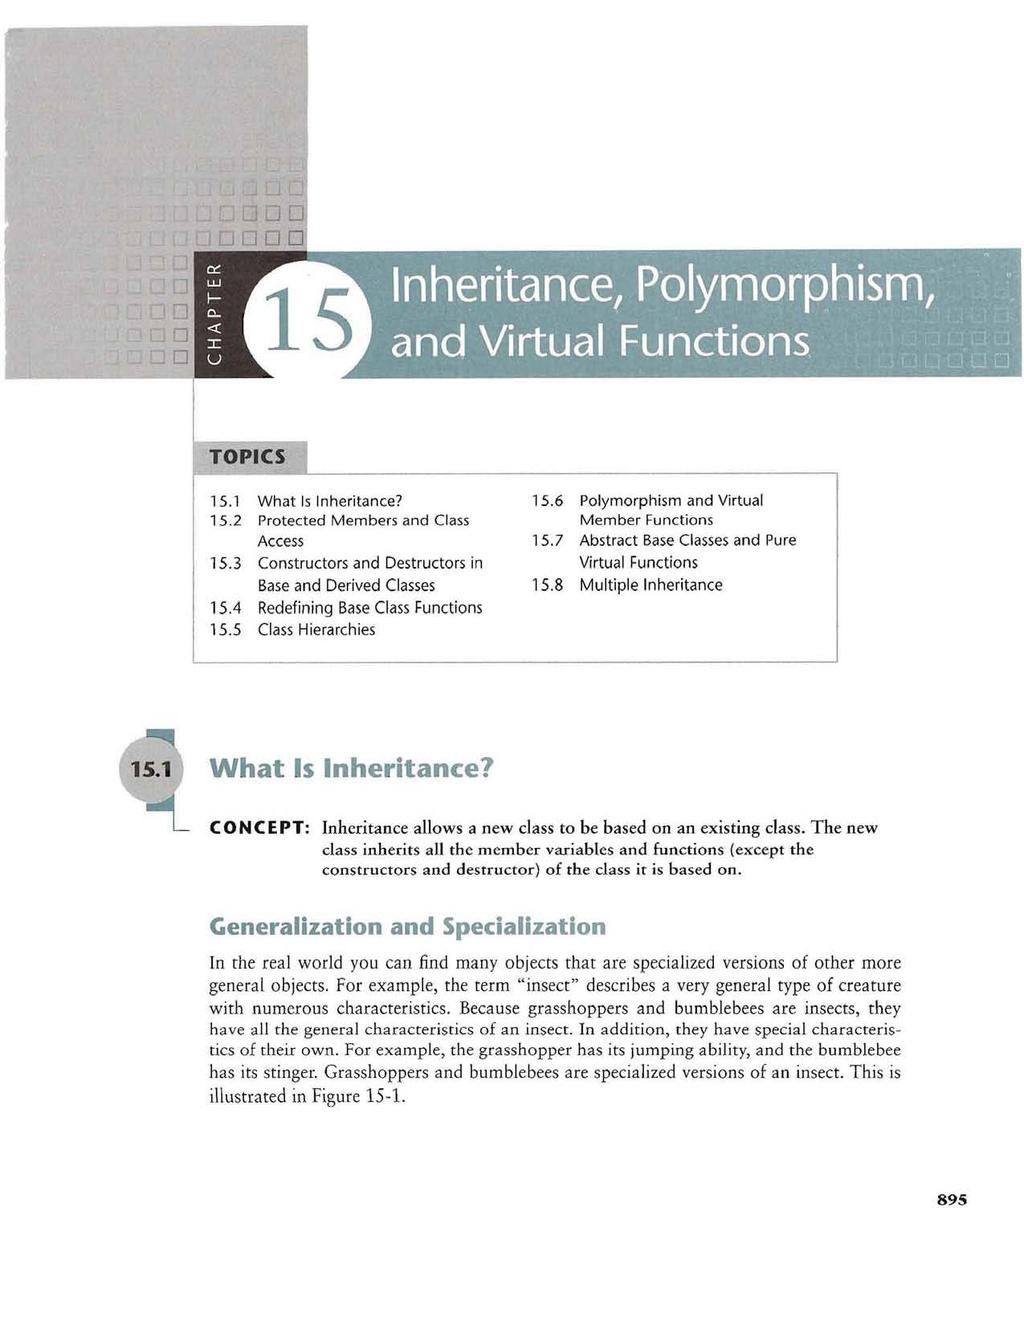 15.1 What Is Inheritance? 15.6 Polymorphism and Virtual 15.2 Protected Members and Cl ass Member Functions Access 15.7 Abstract Base Classes and Pure 15.